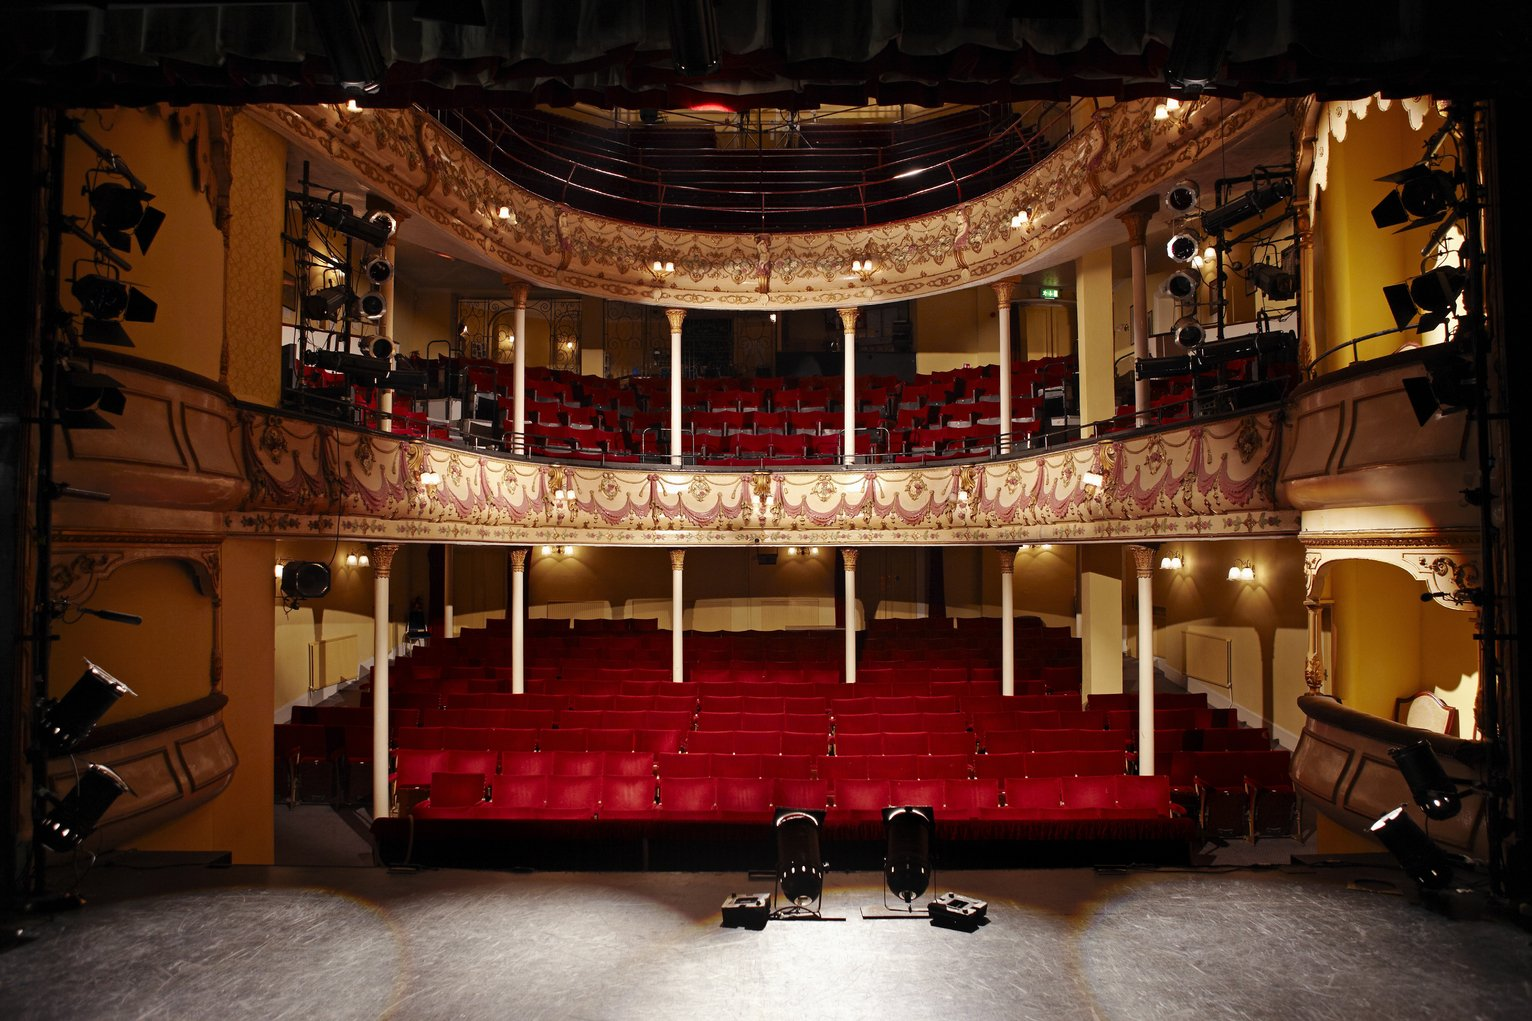 View of an empty theatre with red seats and balcony all hand.